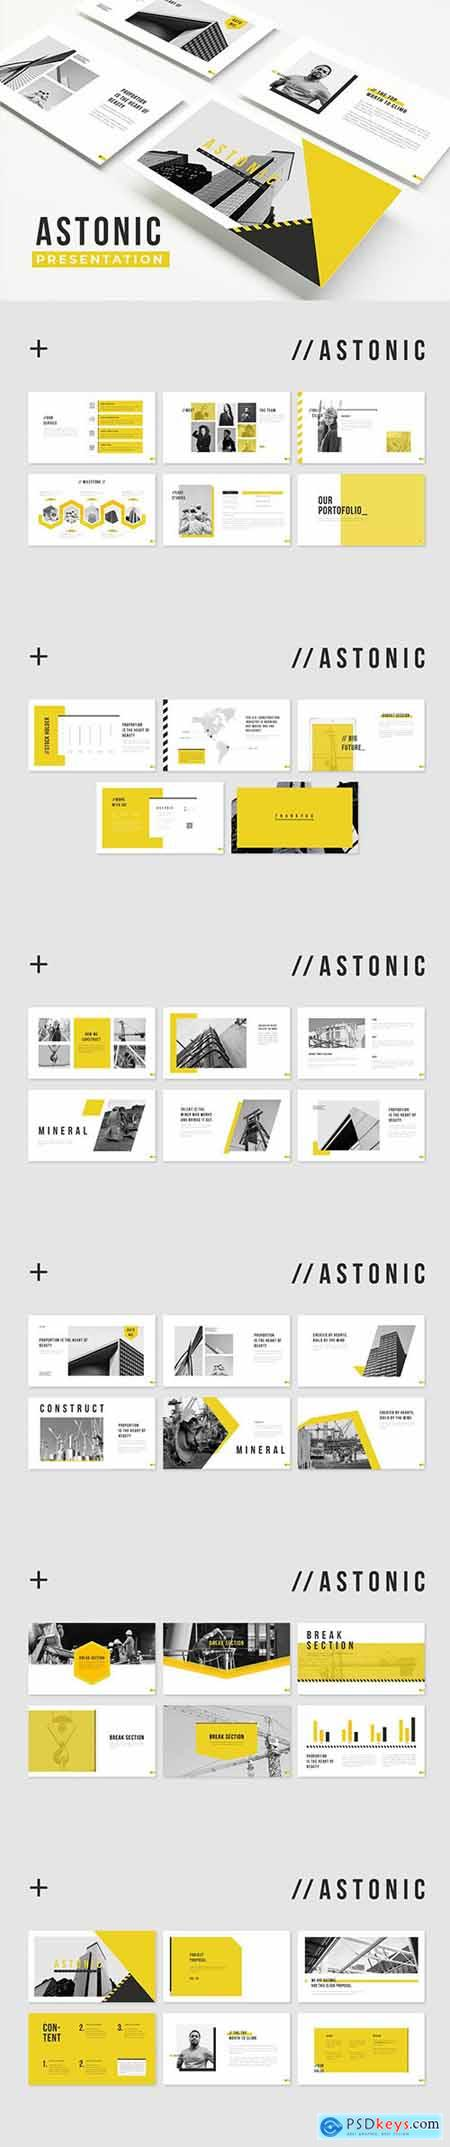 Astonic Powerpoint, Keynote, Google Slides Templates